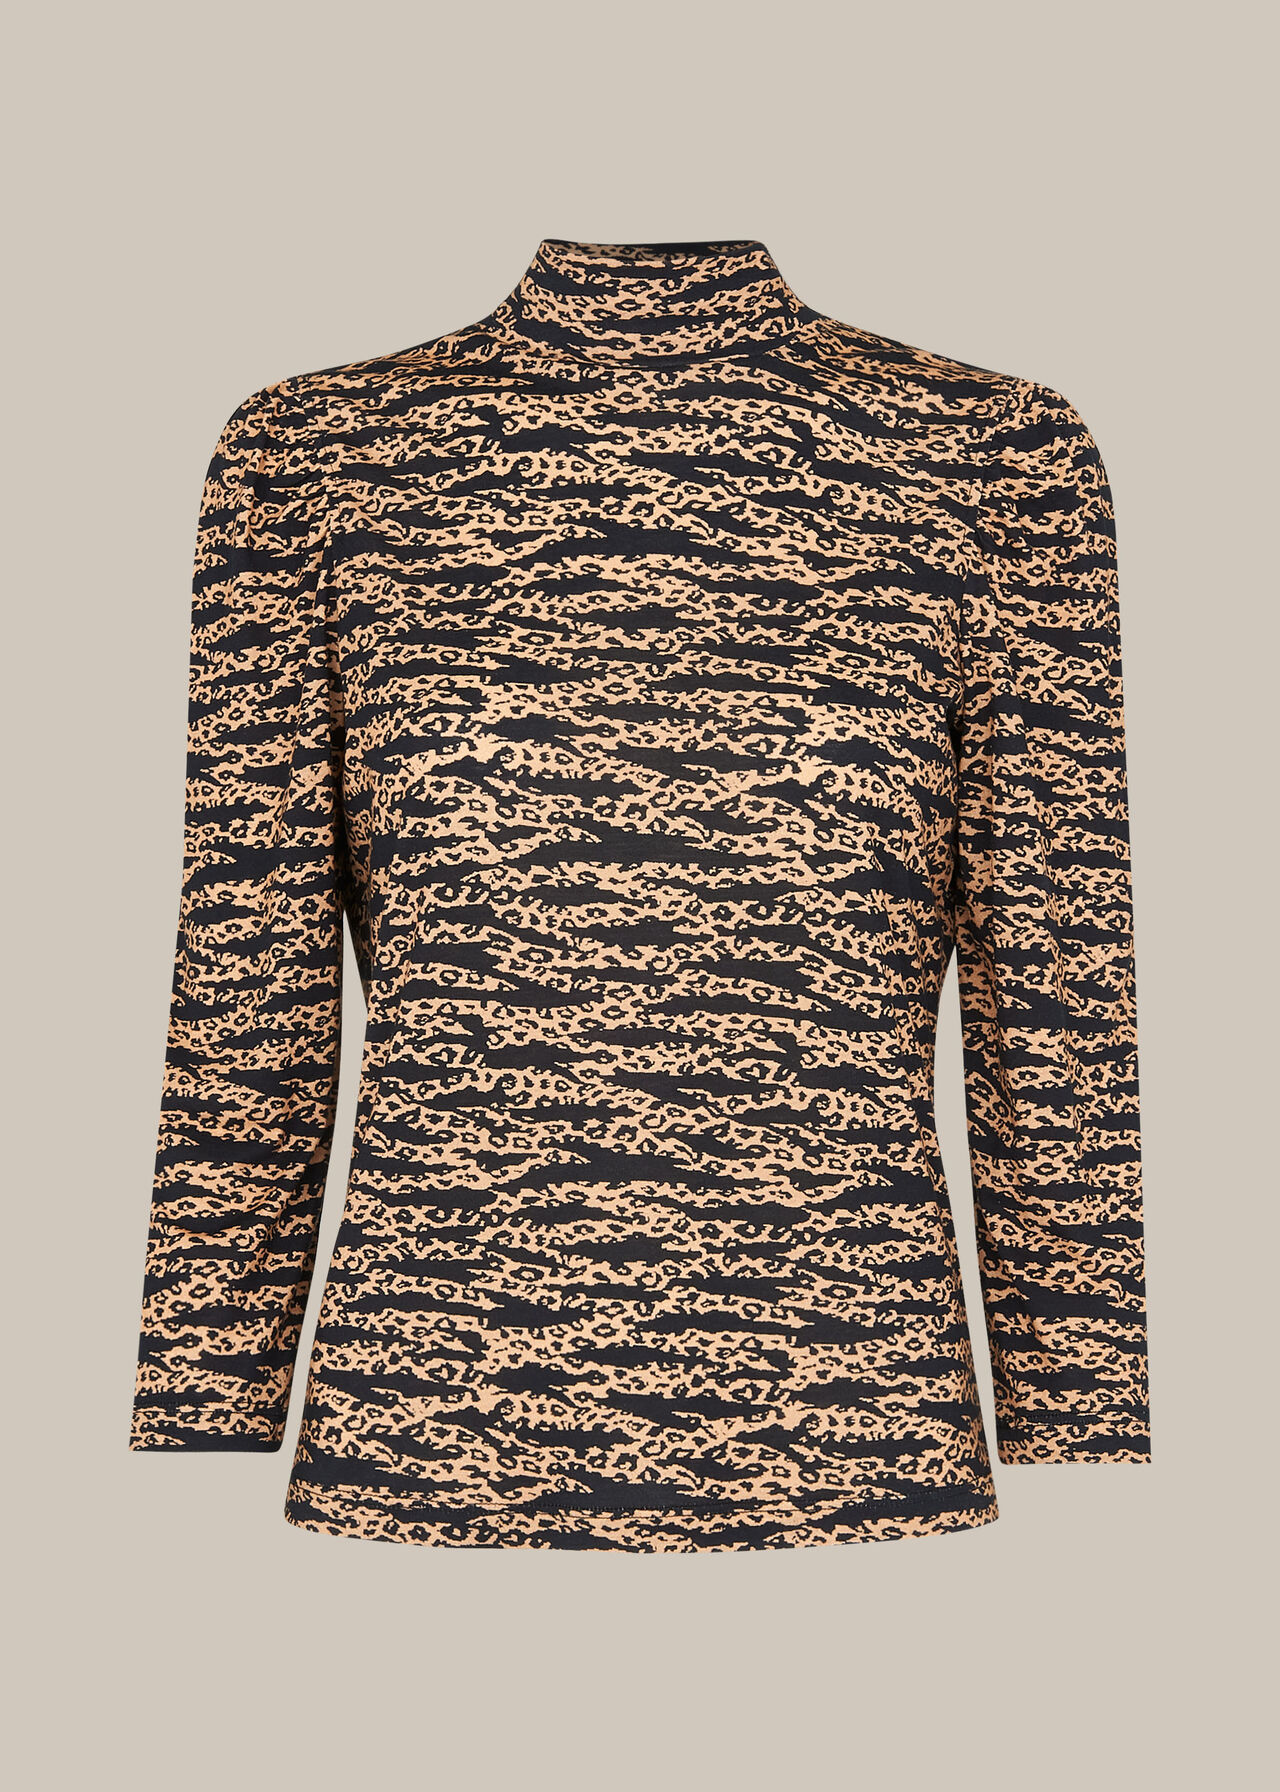 Tiger Leopard Print High Neck